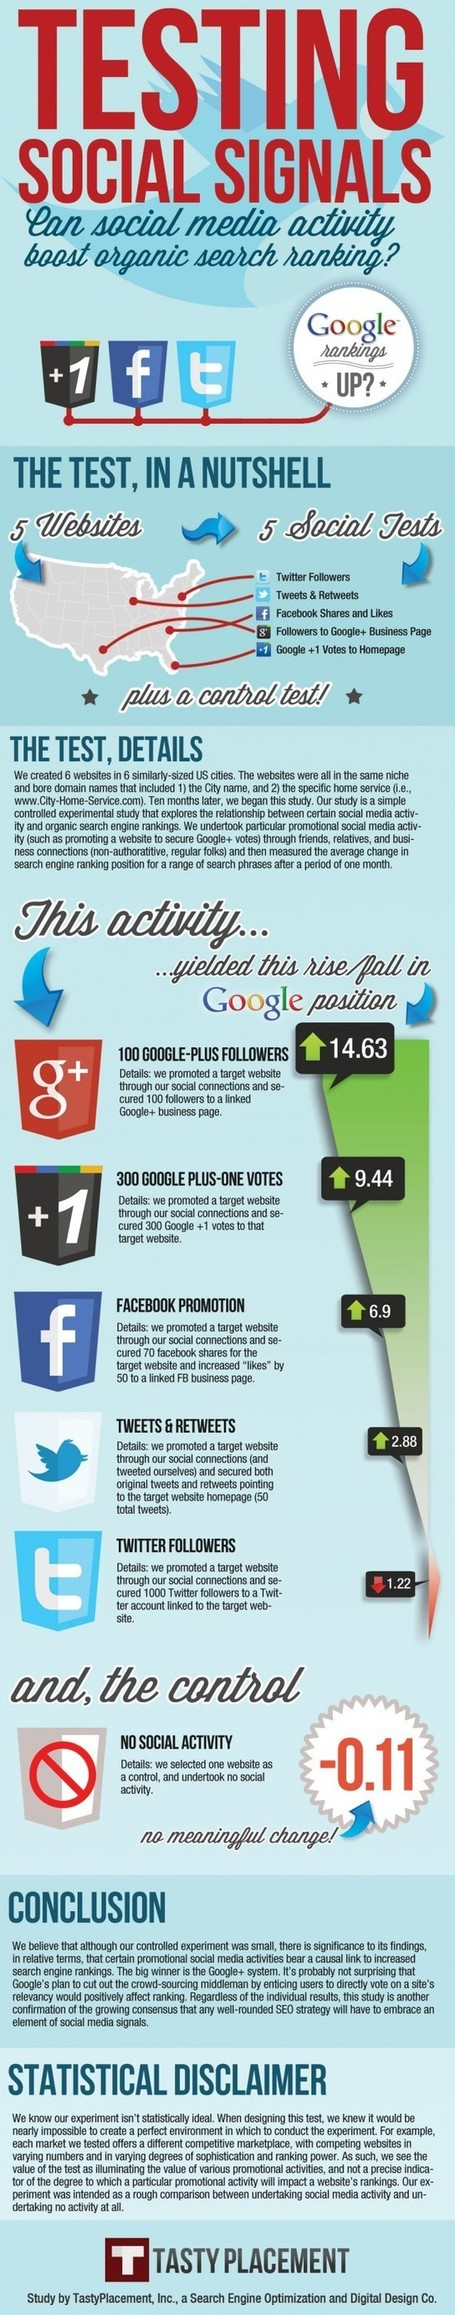 Grow Social Media Reach & become King of Google 1st Page | Infographics | JHdez - Tech | Scoop.it